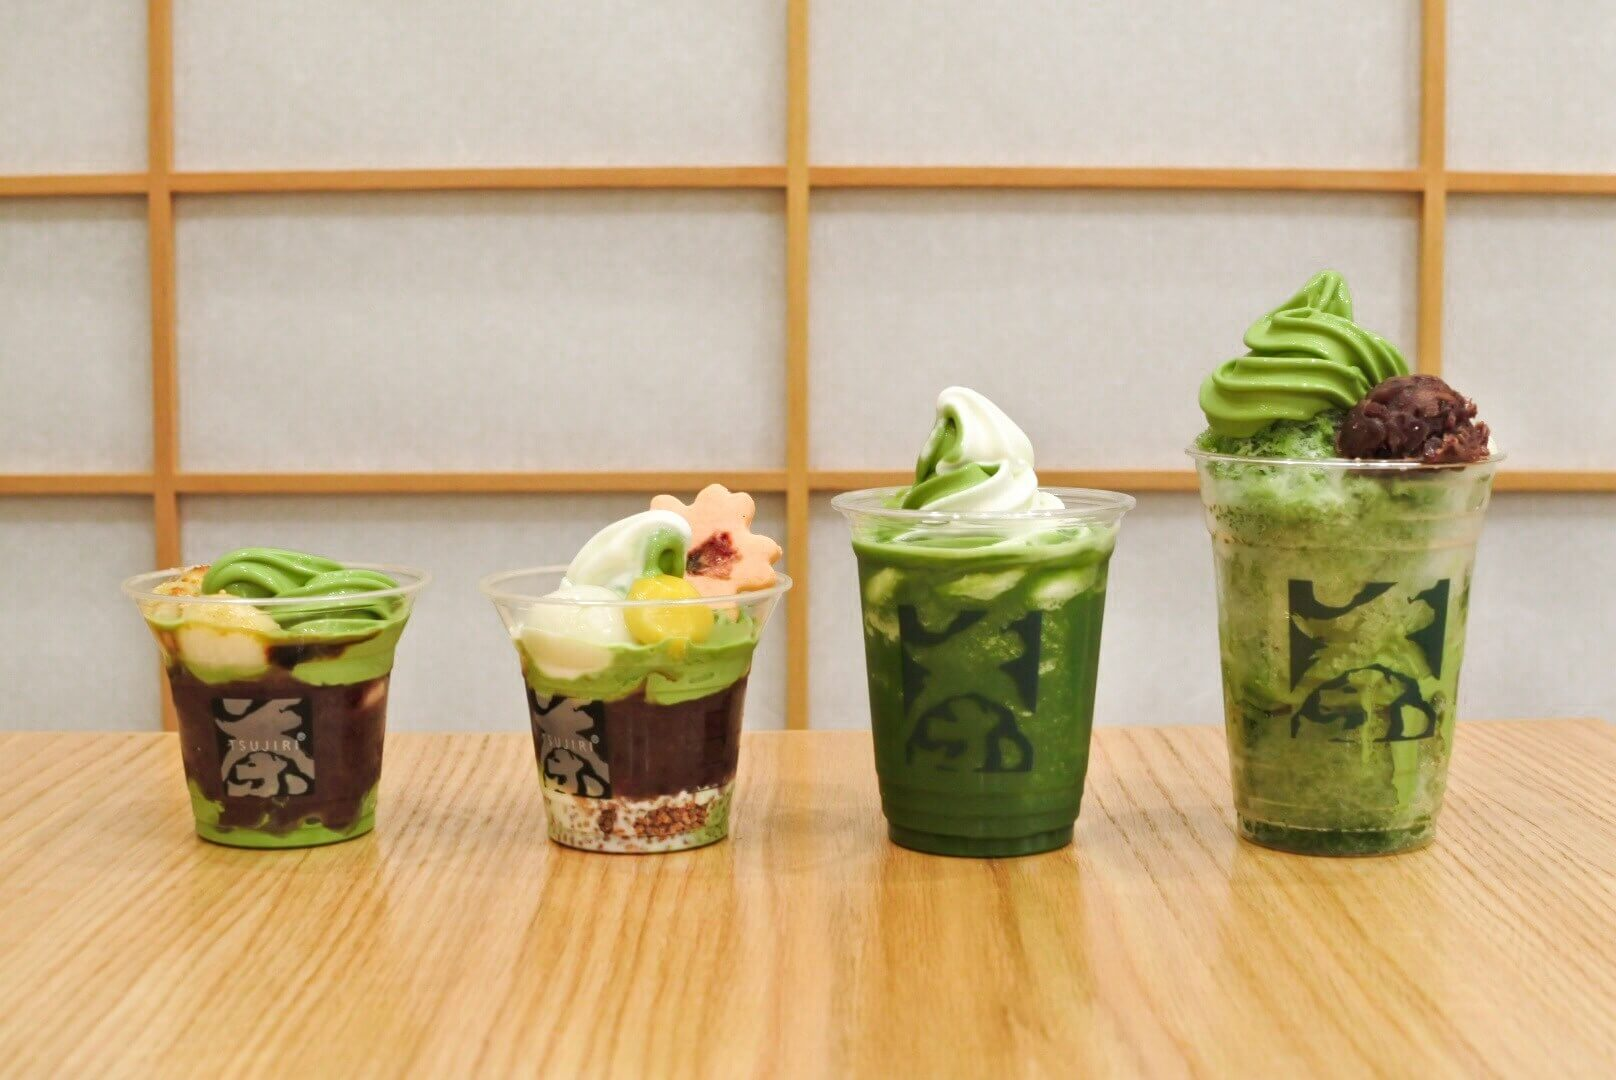 Display of Tsujiri dessert ice cream in various cup sizes